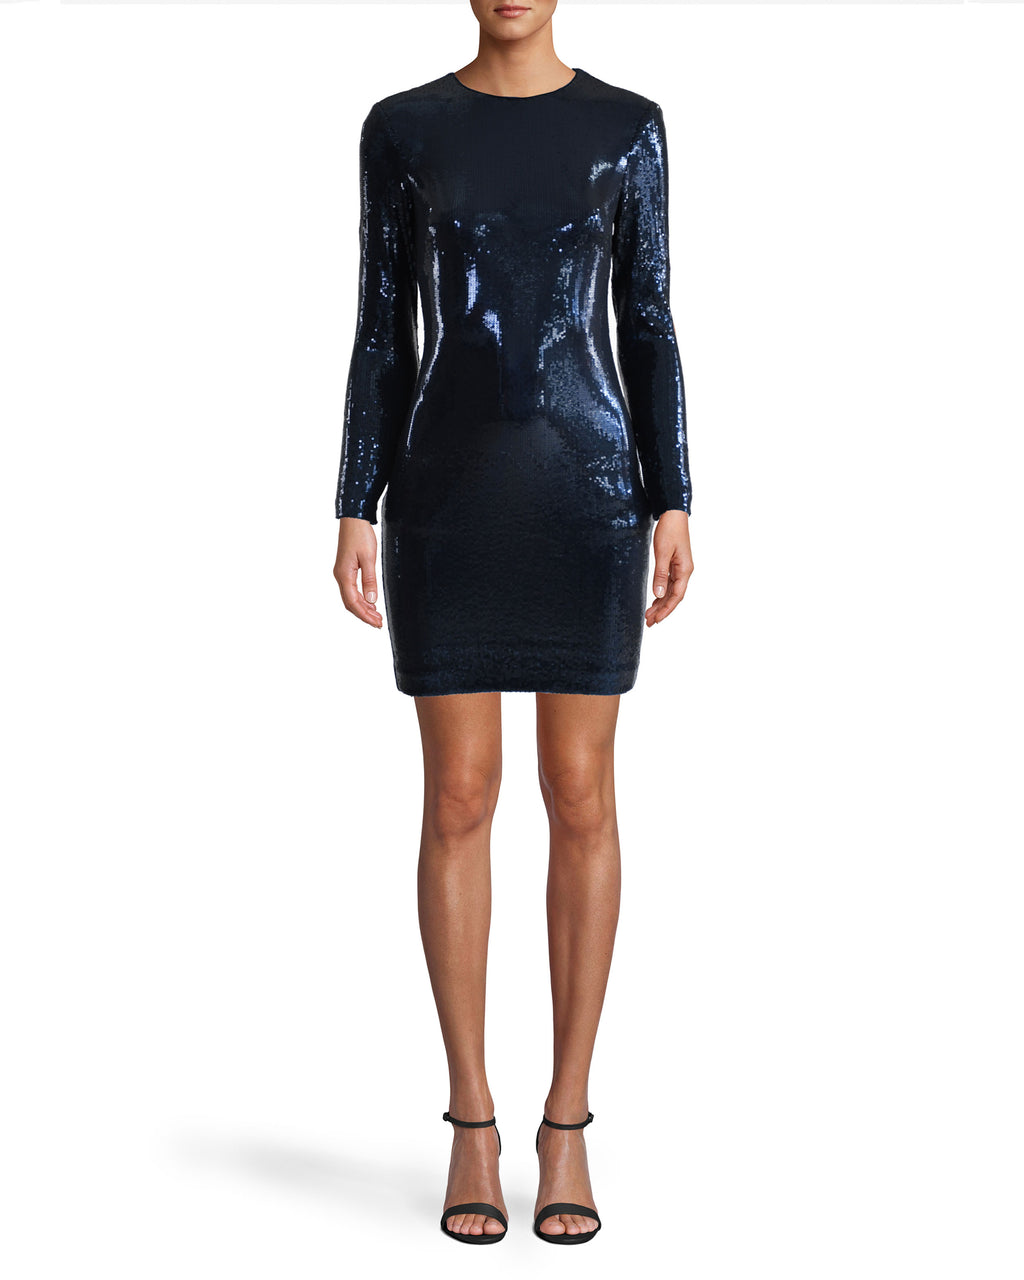 Sequin Long Sleeve Mini Dress Image 1